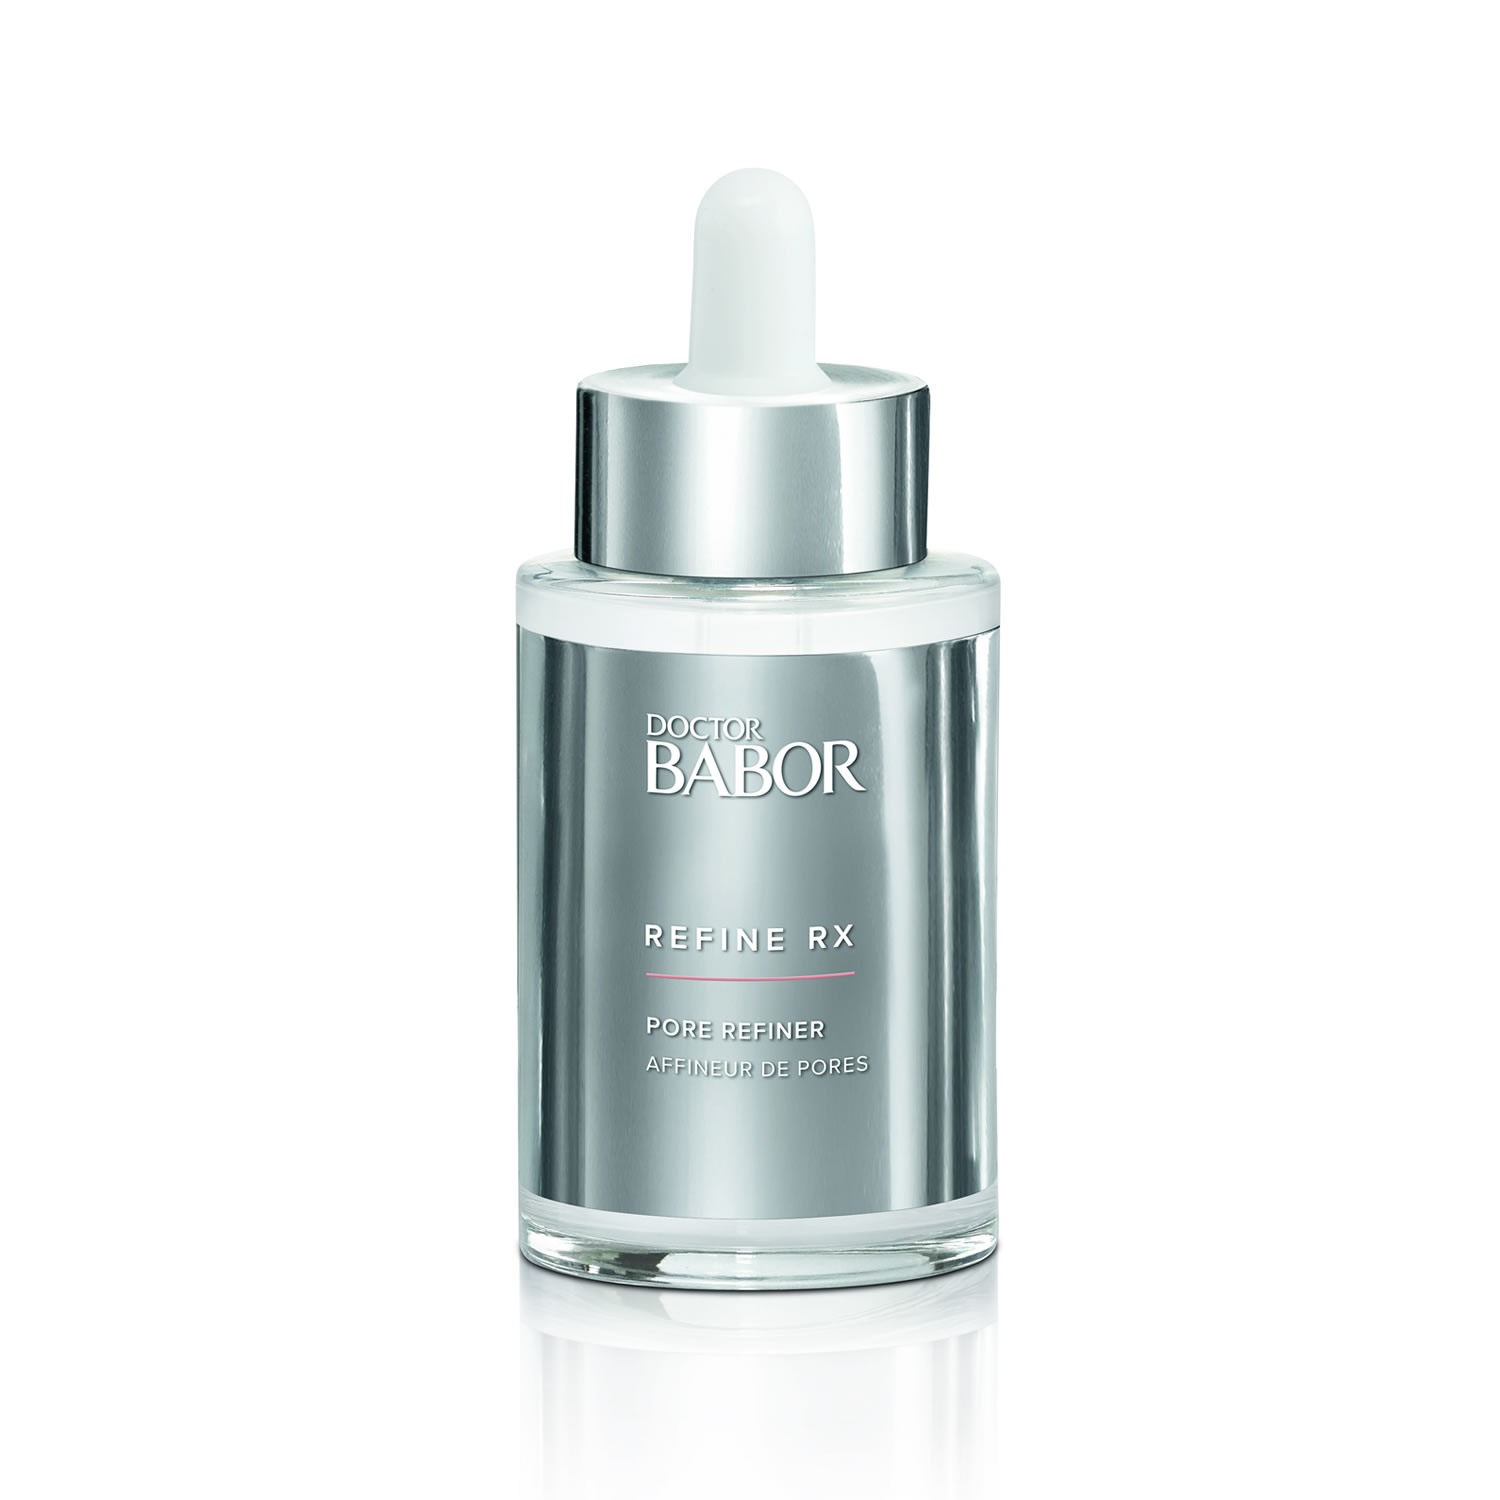 BABOR DOCTOR BABOR REFINE RX PORE REFINER (50 ml)